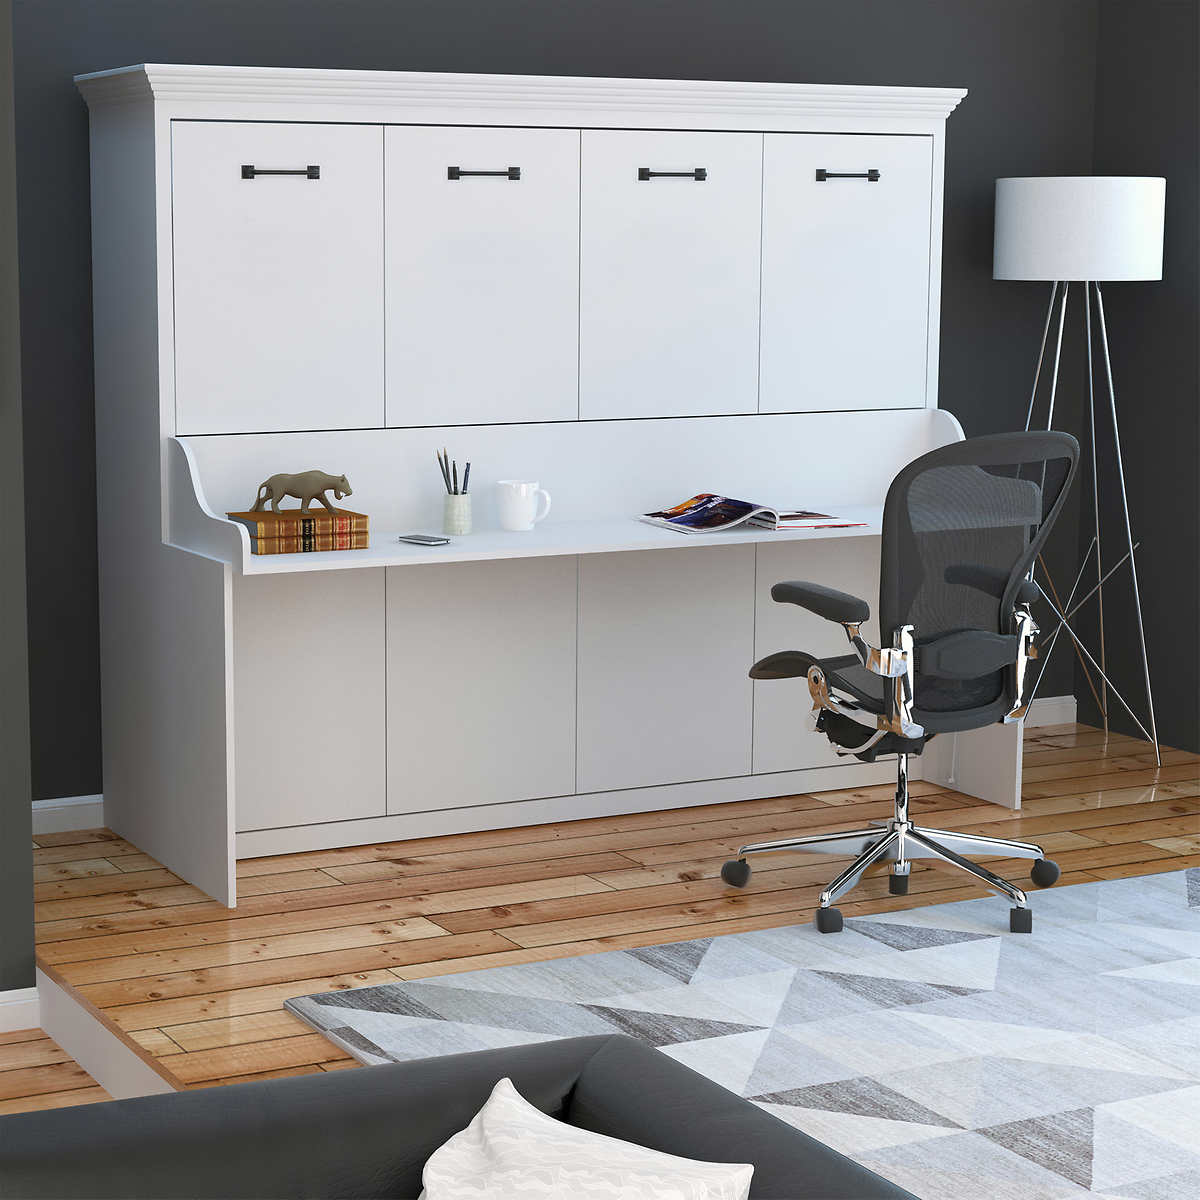 Melbourne queen wall bed w desk combo white click to zoom amipublicfo Gallery